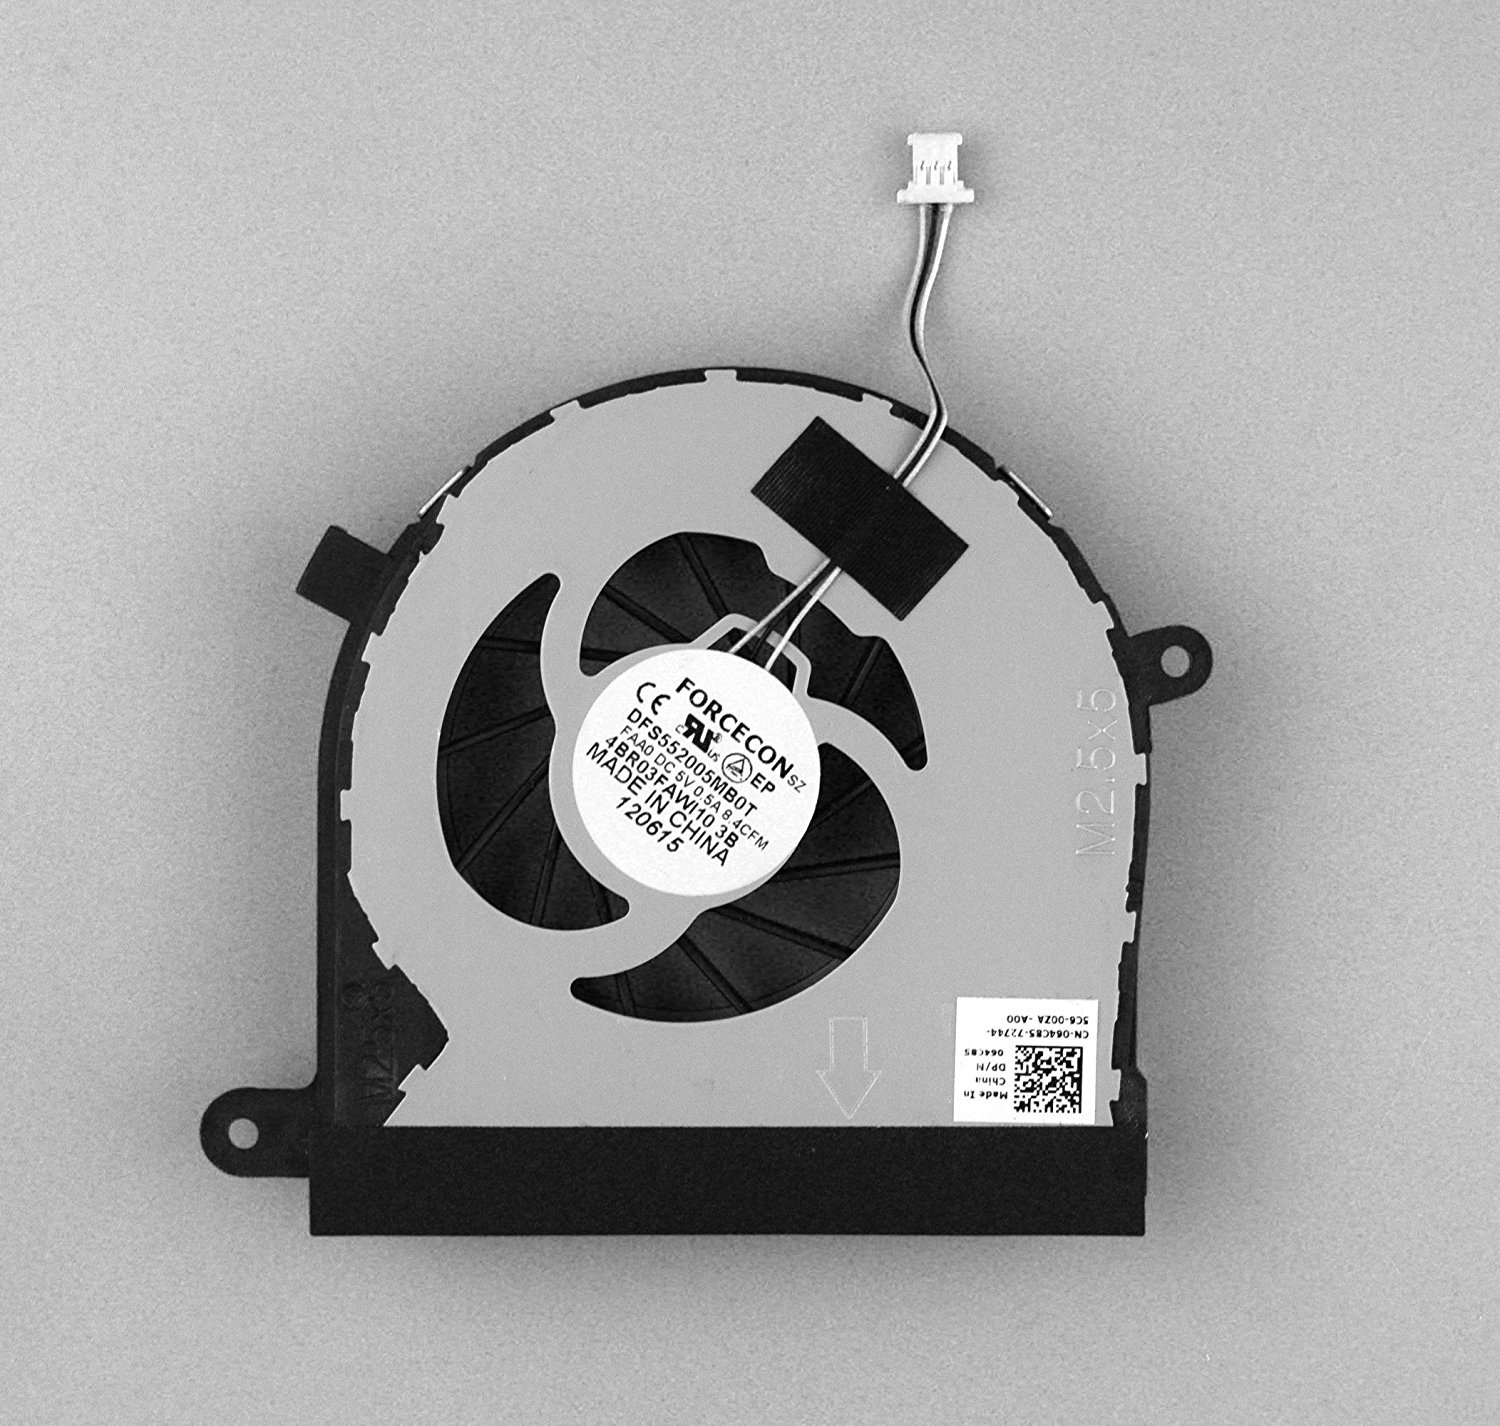 "Dell Inspiron N7110 17R 17.3"" CPU Cooling Fan Vostro 3750 Laptop P/N:064c85/64c85 DFS552005MB0T"